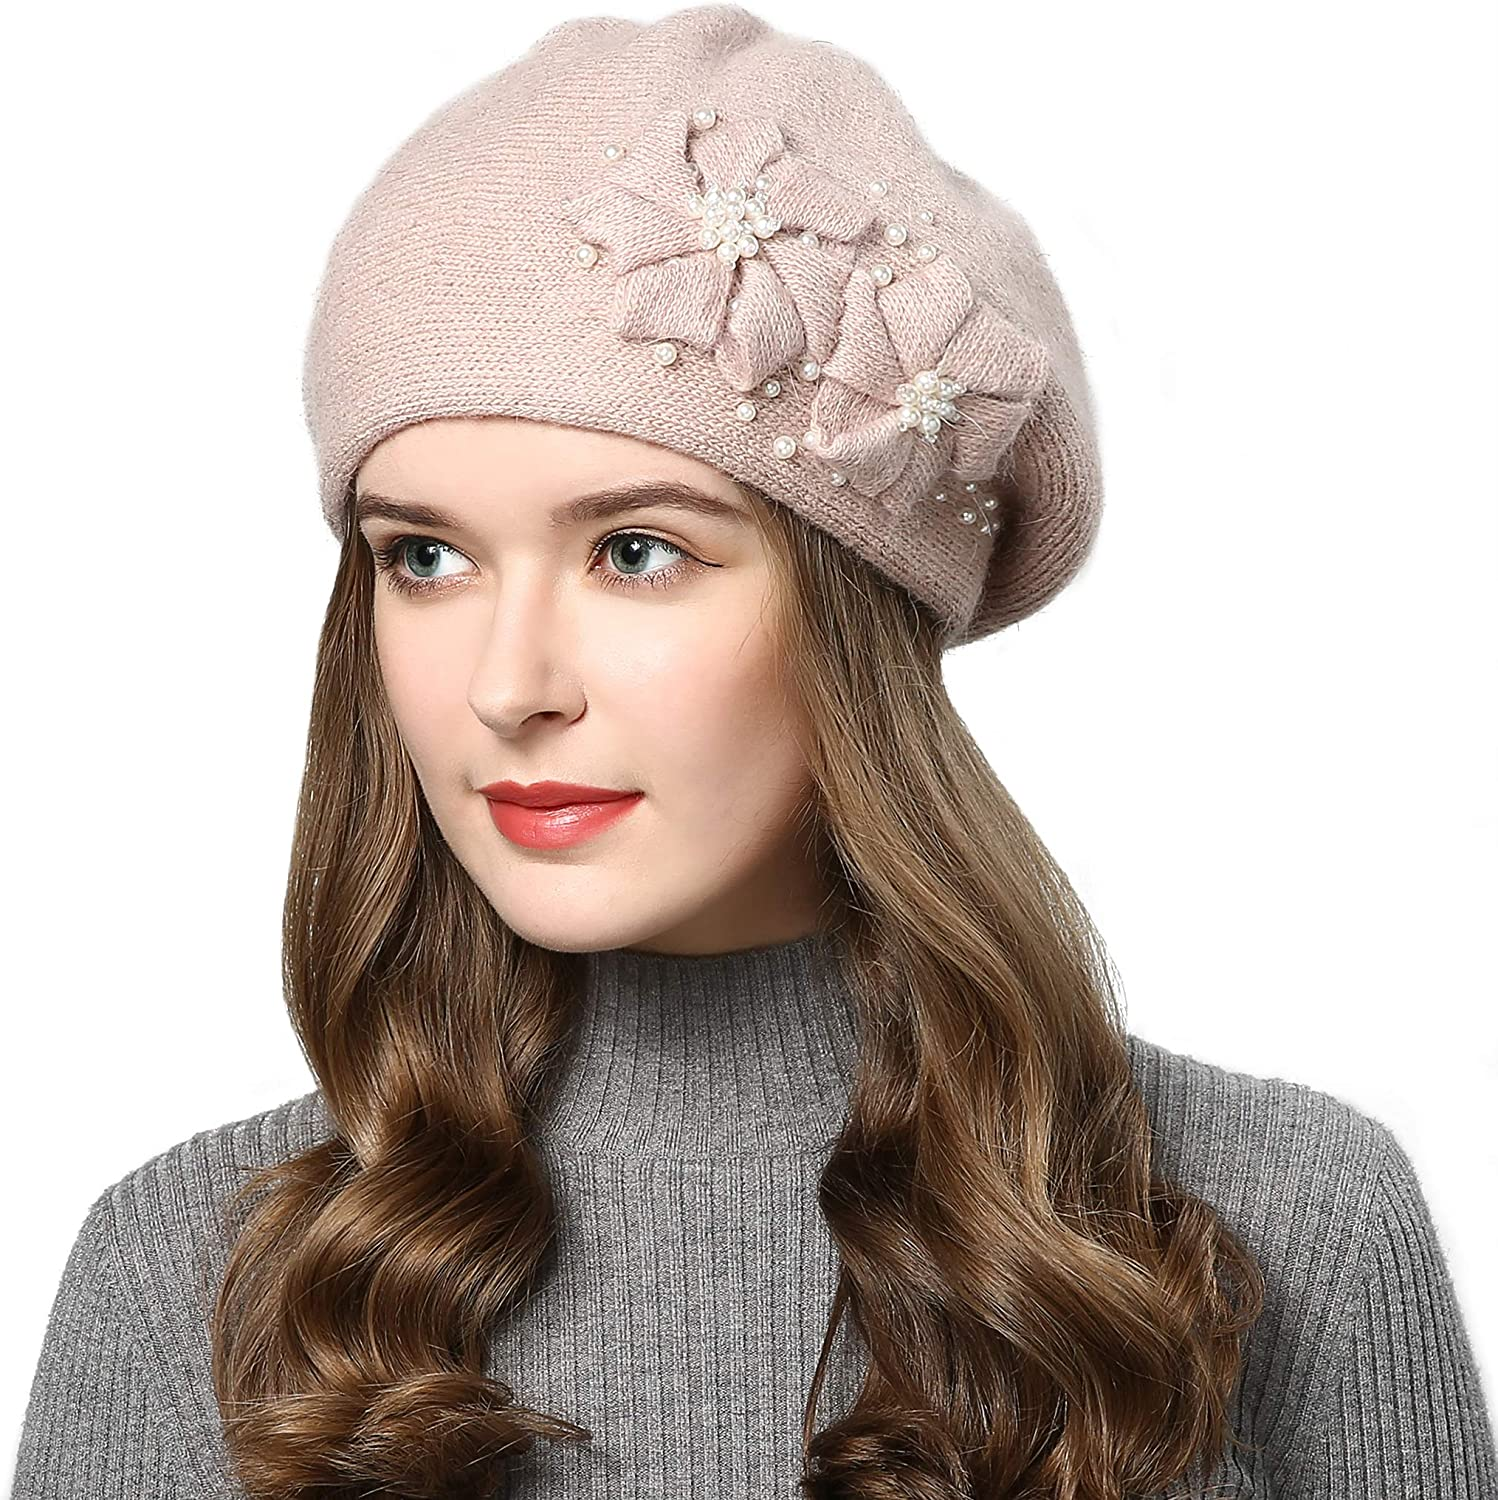 French Style Beret Hat for Women Rabbit Hair Knit Artist Hat Thick Lined Classic Warm Casual Hat